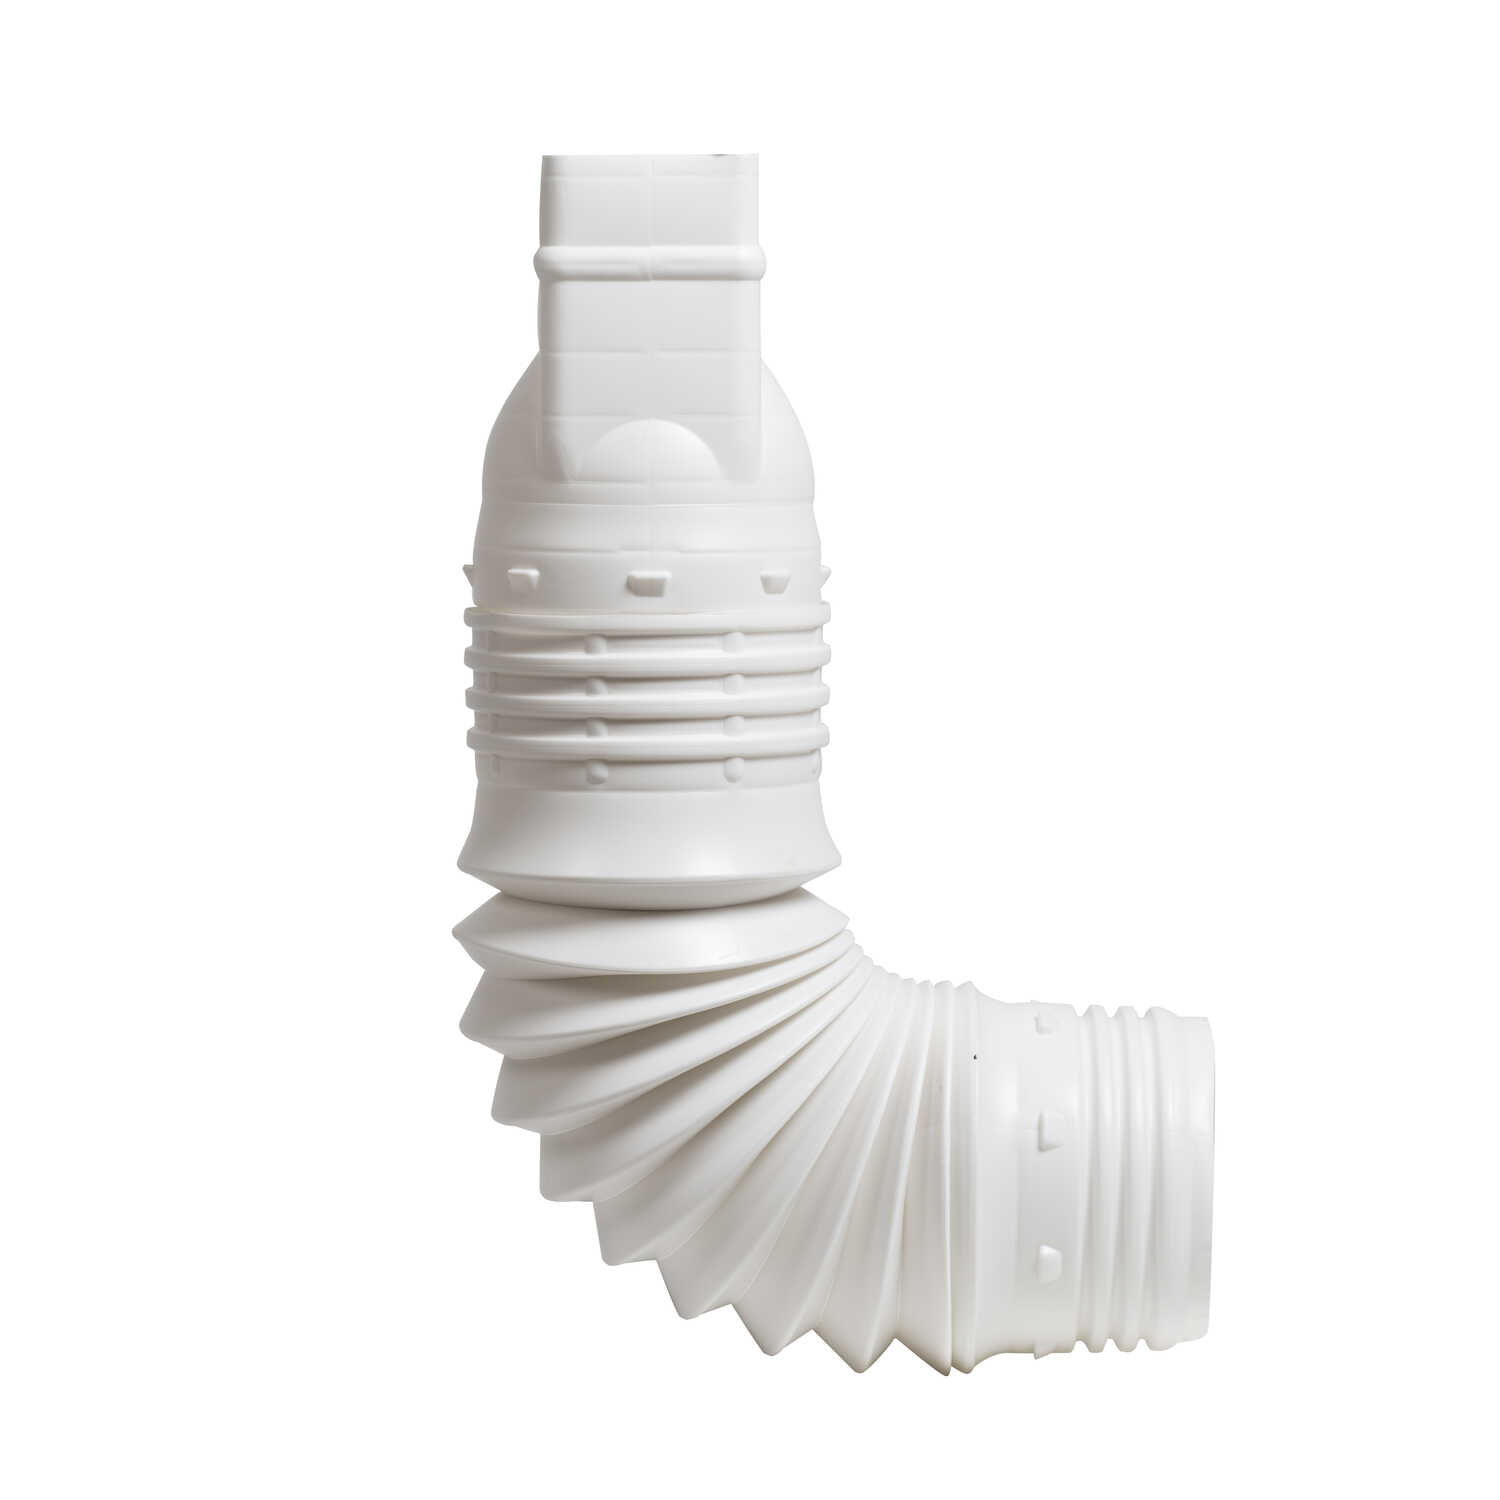 Flex-A-Spout  3.75 in. H x 4 in. W x 9 in. L Plastic  Flexible Downspout Extension  White